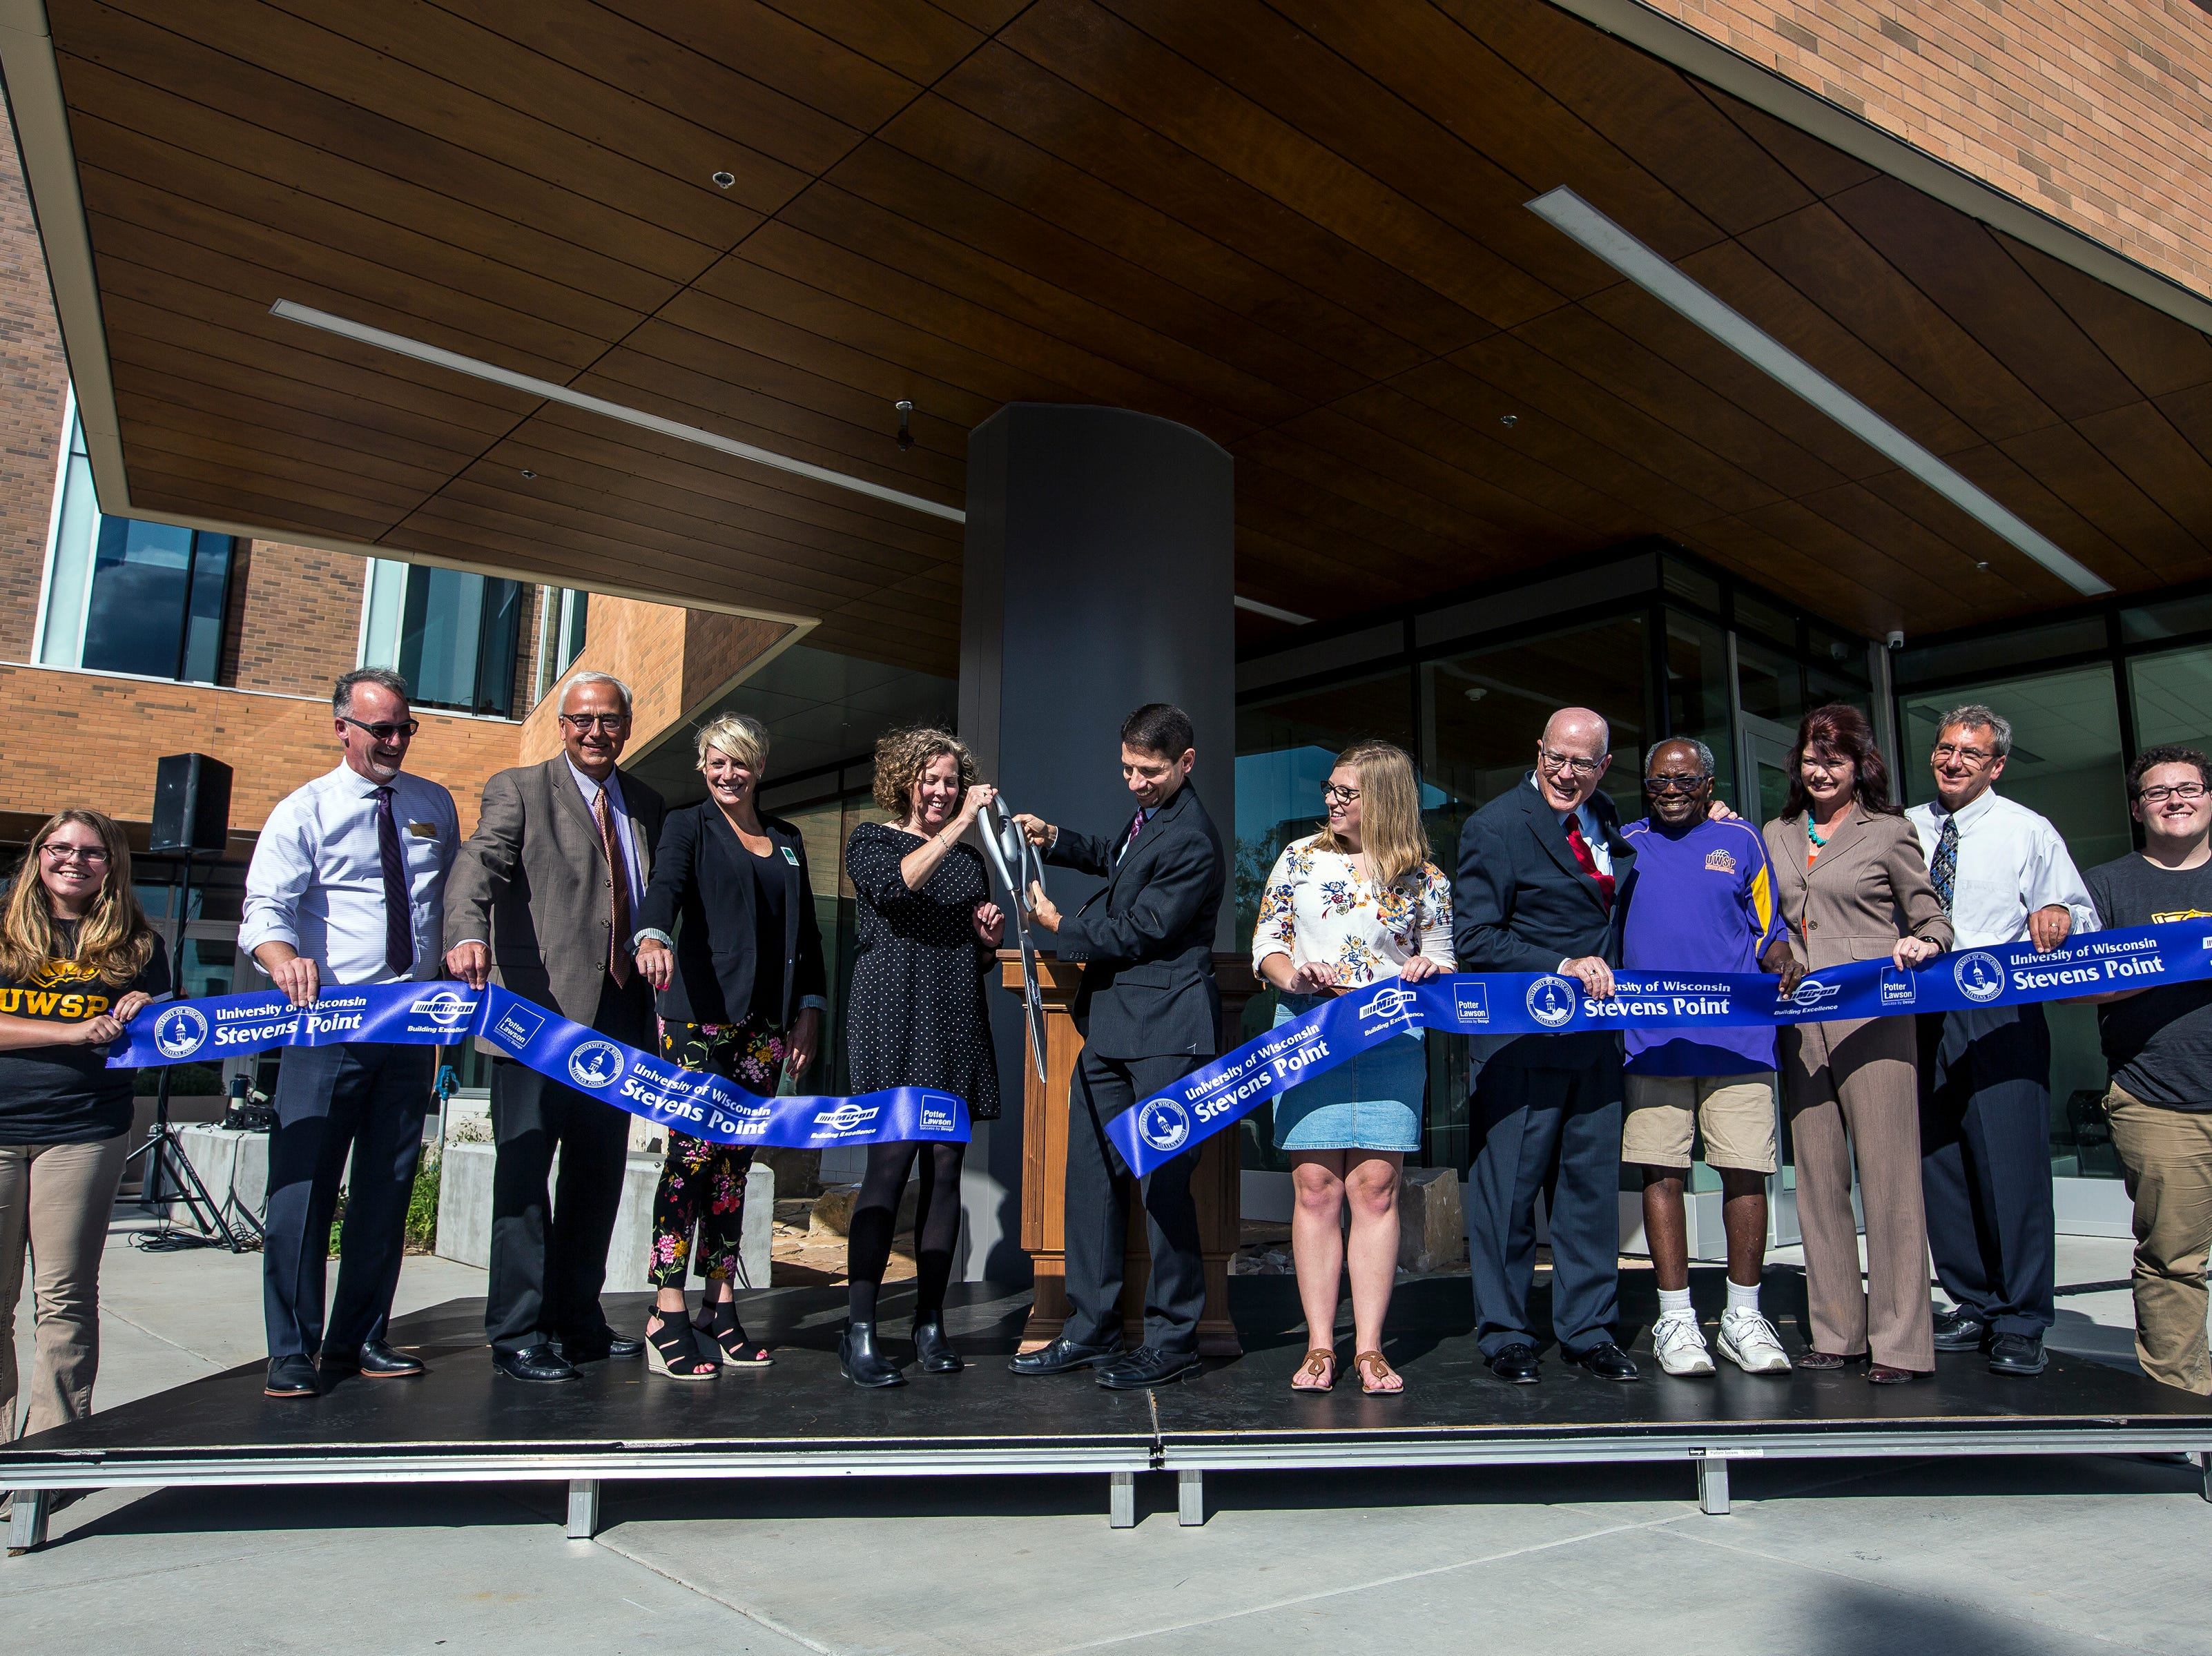 Representatives cut a ribbon during the opening ceremony for the Chemistry Biology Building at the University of Wisconsin-Stevens Point in Stevens Point, Wis., Sept. 14, 2018.